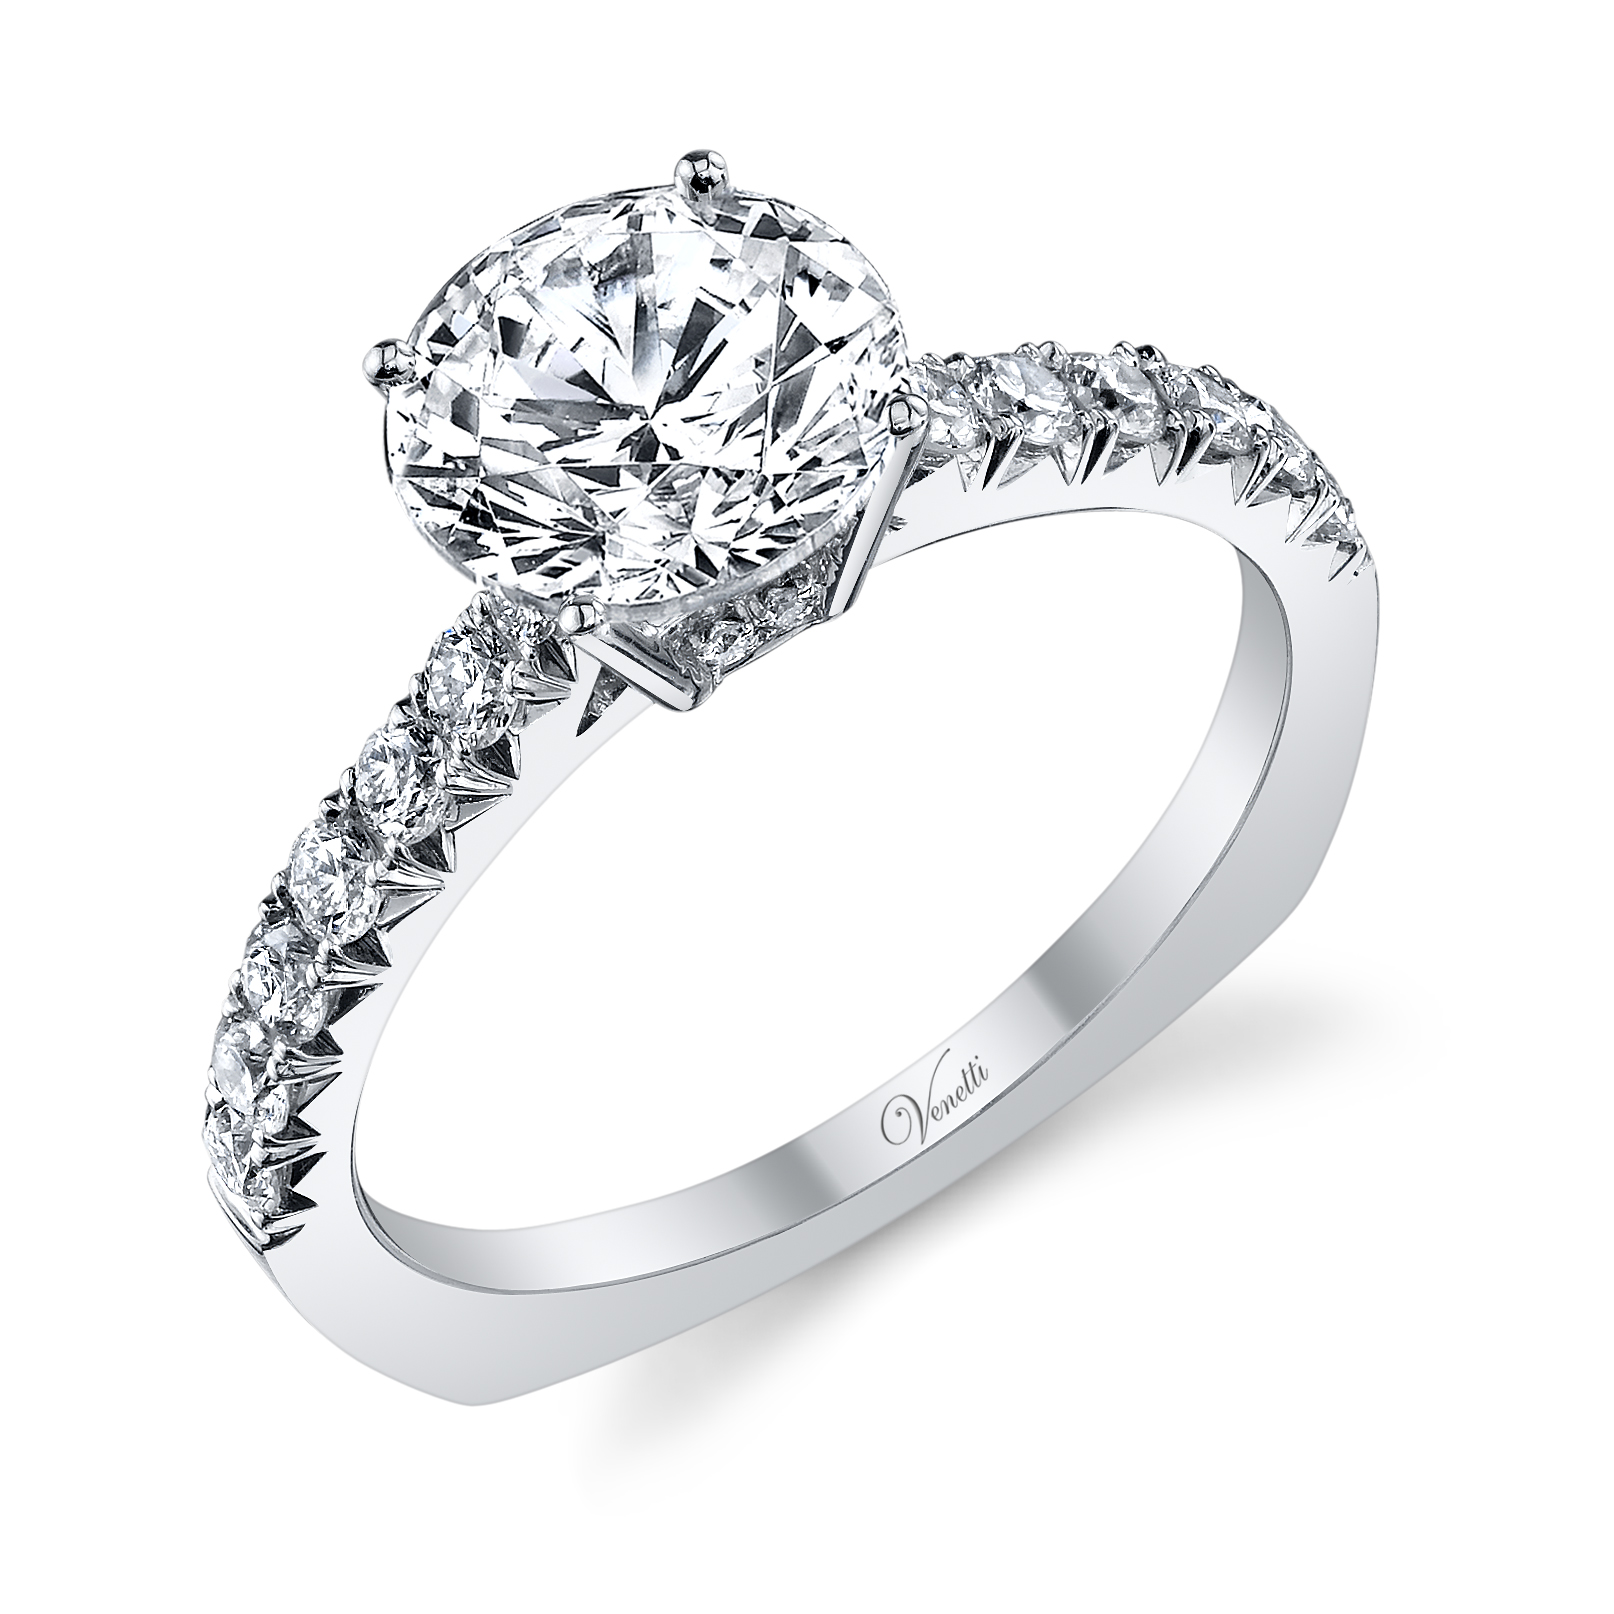 collection engagement ring silverscape band rings sylvie collections detailed designs diamond wedding